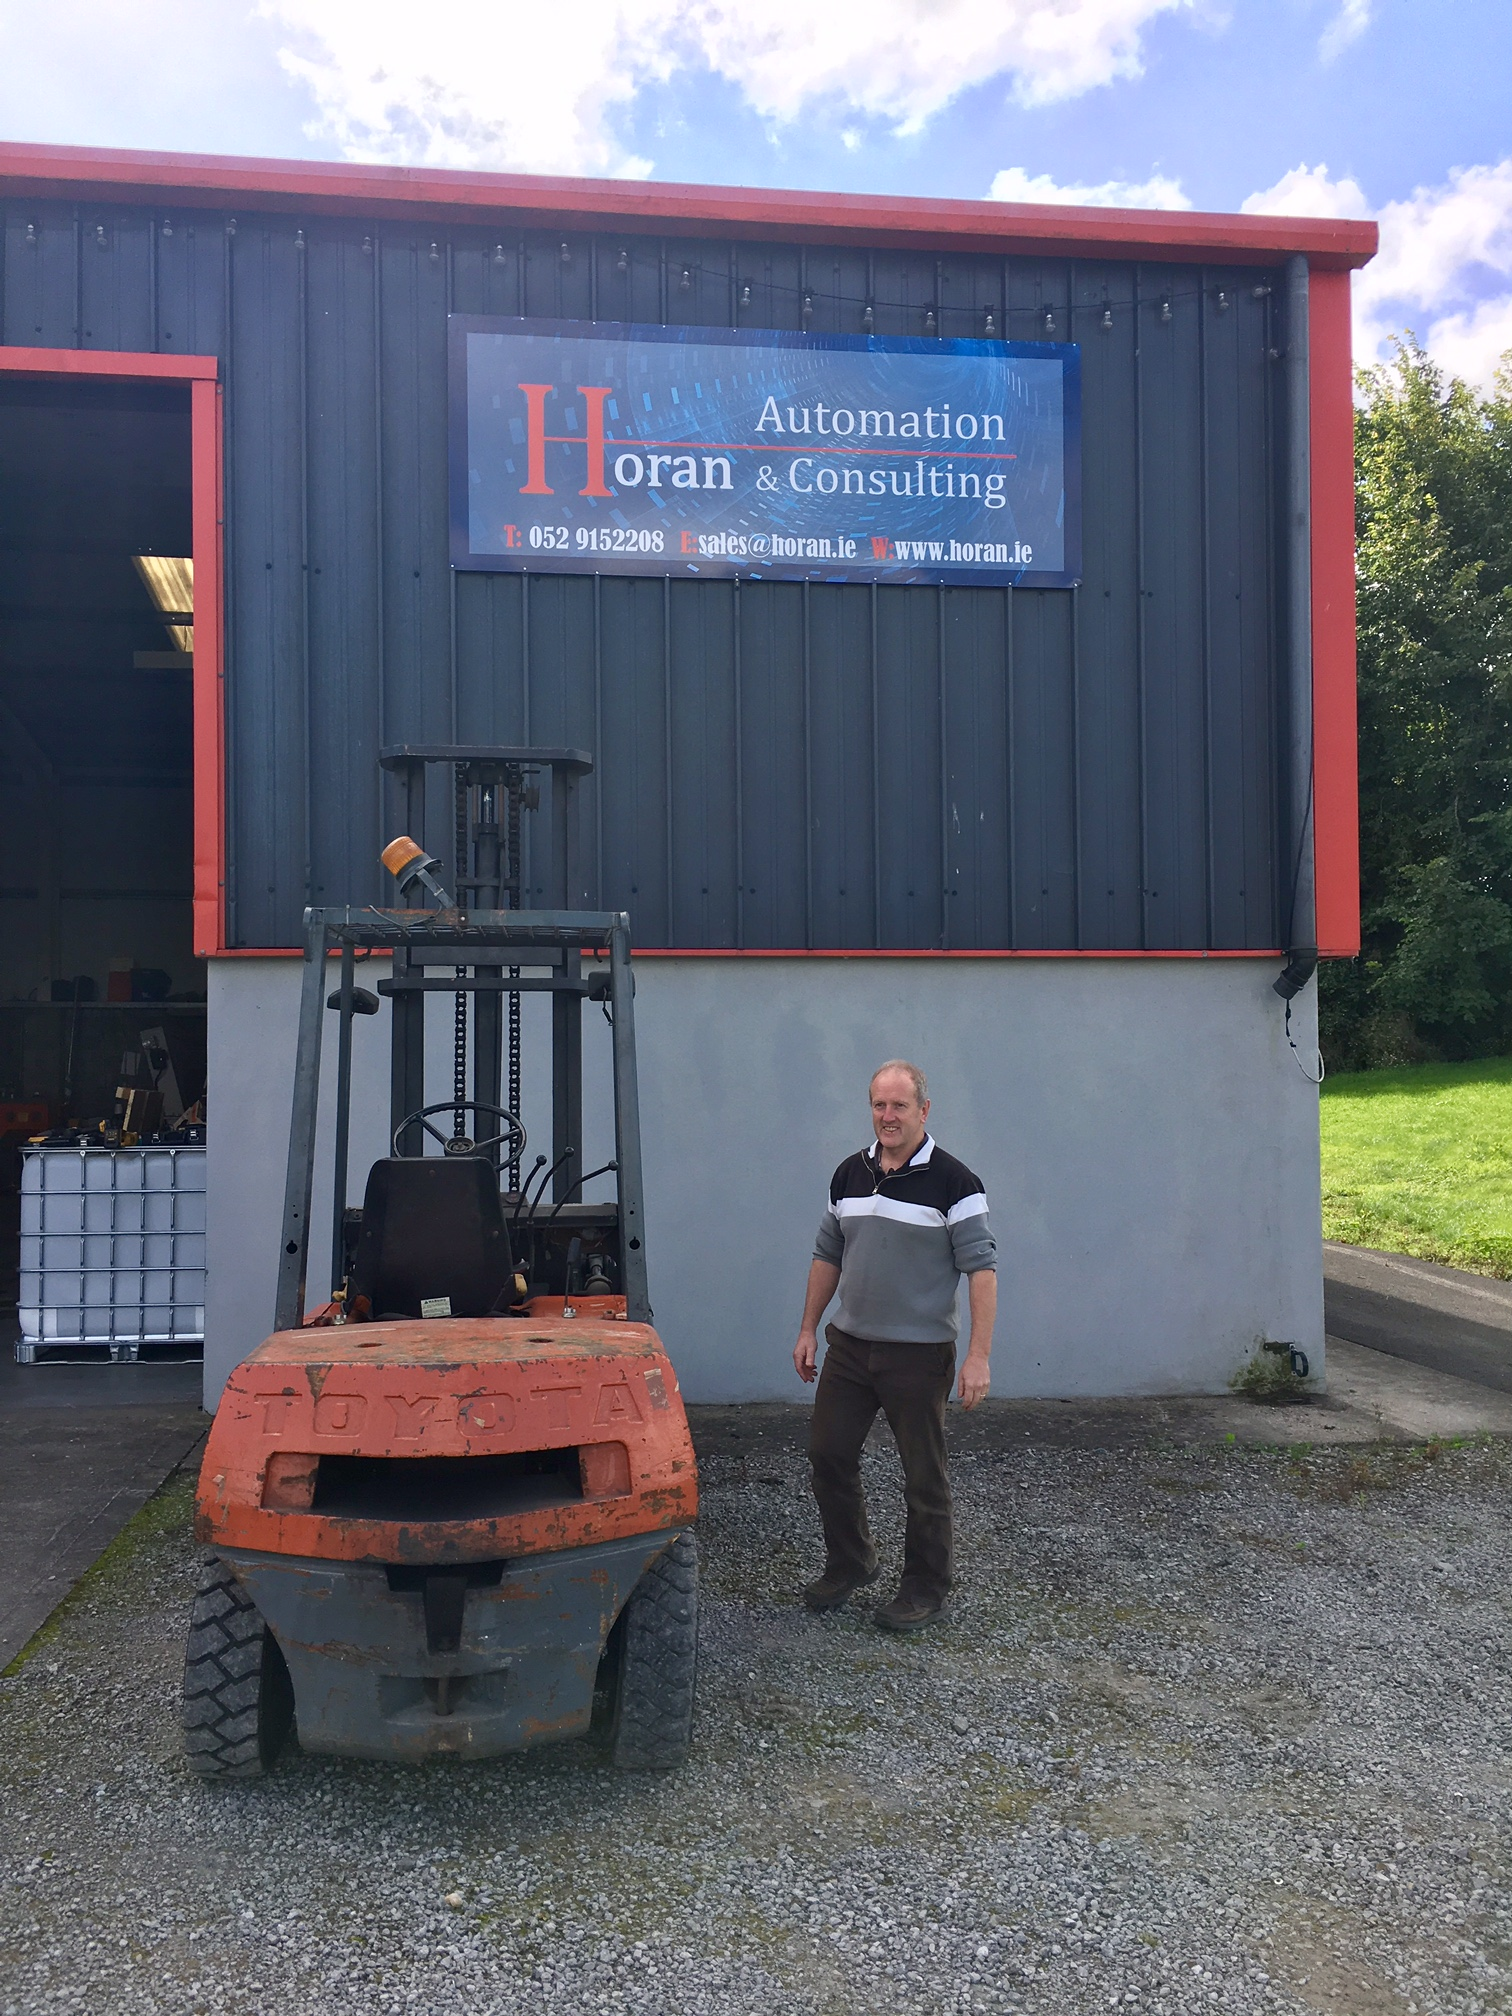 Tipperary Robot Company sees huge growth in 2017